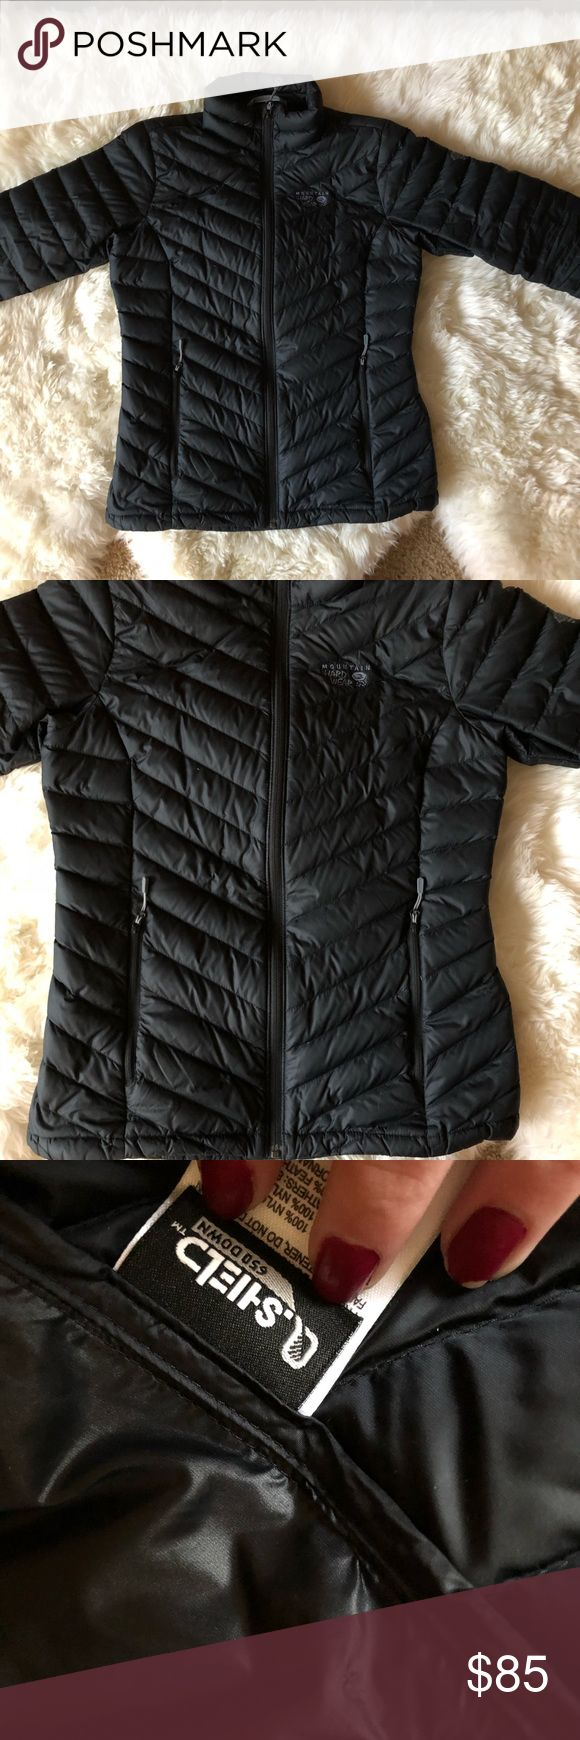 Women's down Mountain Hardwear jacket Very lightweight, yet also very warm. I believe that this is the micro ratio jacket. I have had it almost a year (i think i got it late feb of 2017), so it has really only been worn for one winter, but it has no wear and tear, no rips. only thing is that there a a couple spots where threads were pulled, but they can be cut or fixed, and it doesn't affect the coat at all. It is 650 down fill (80% duck down, 20% feathers) the shell and lining is nylon…